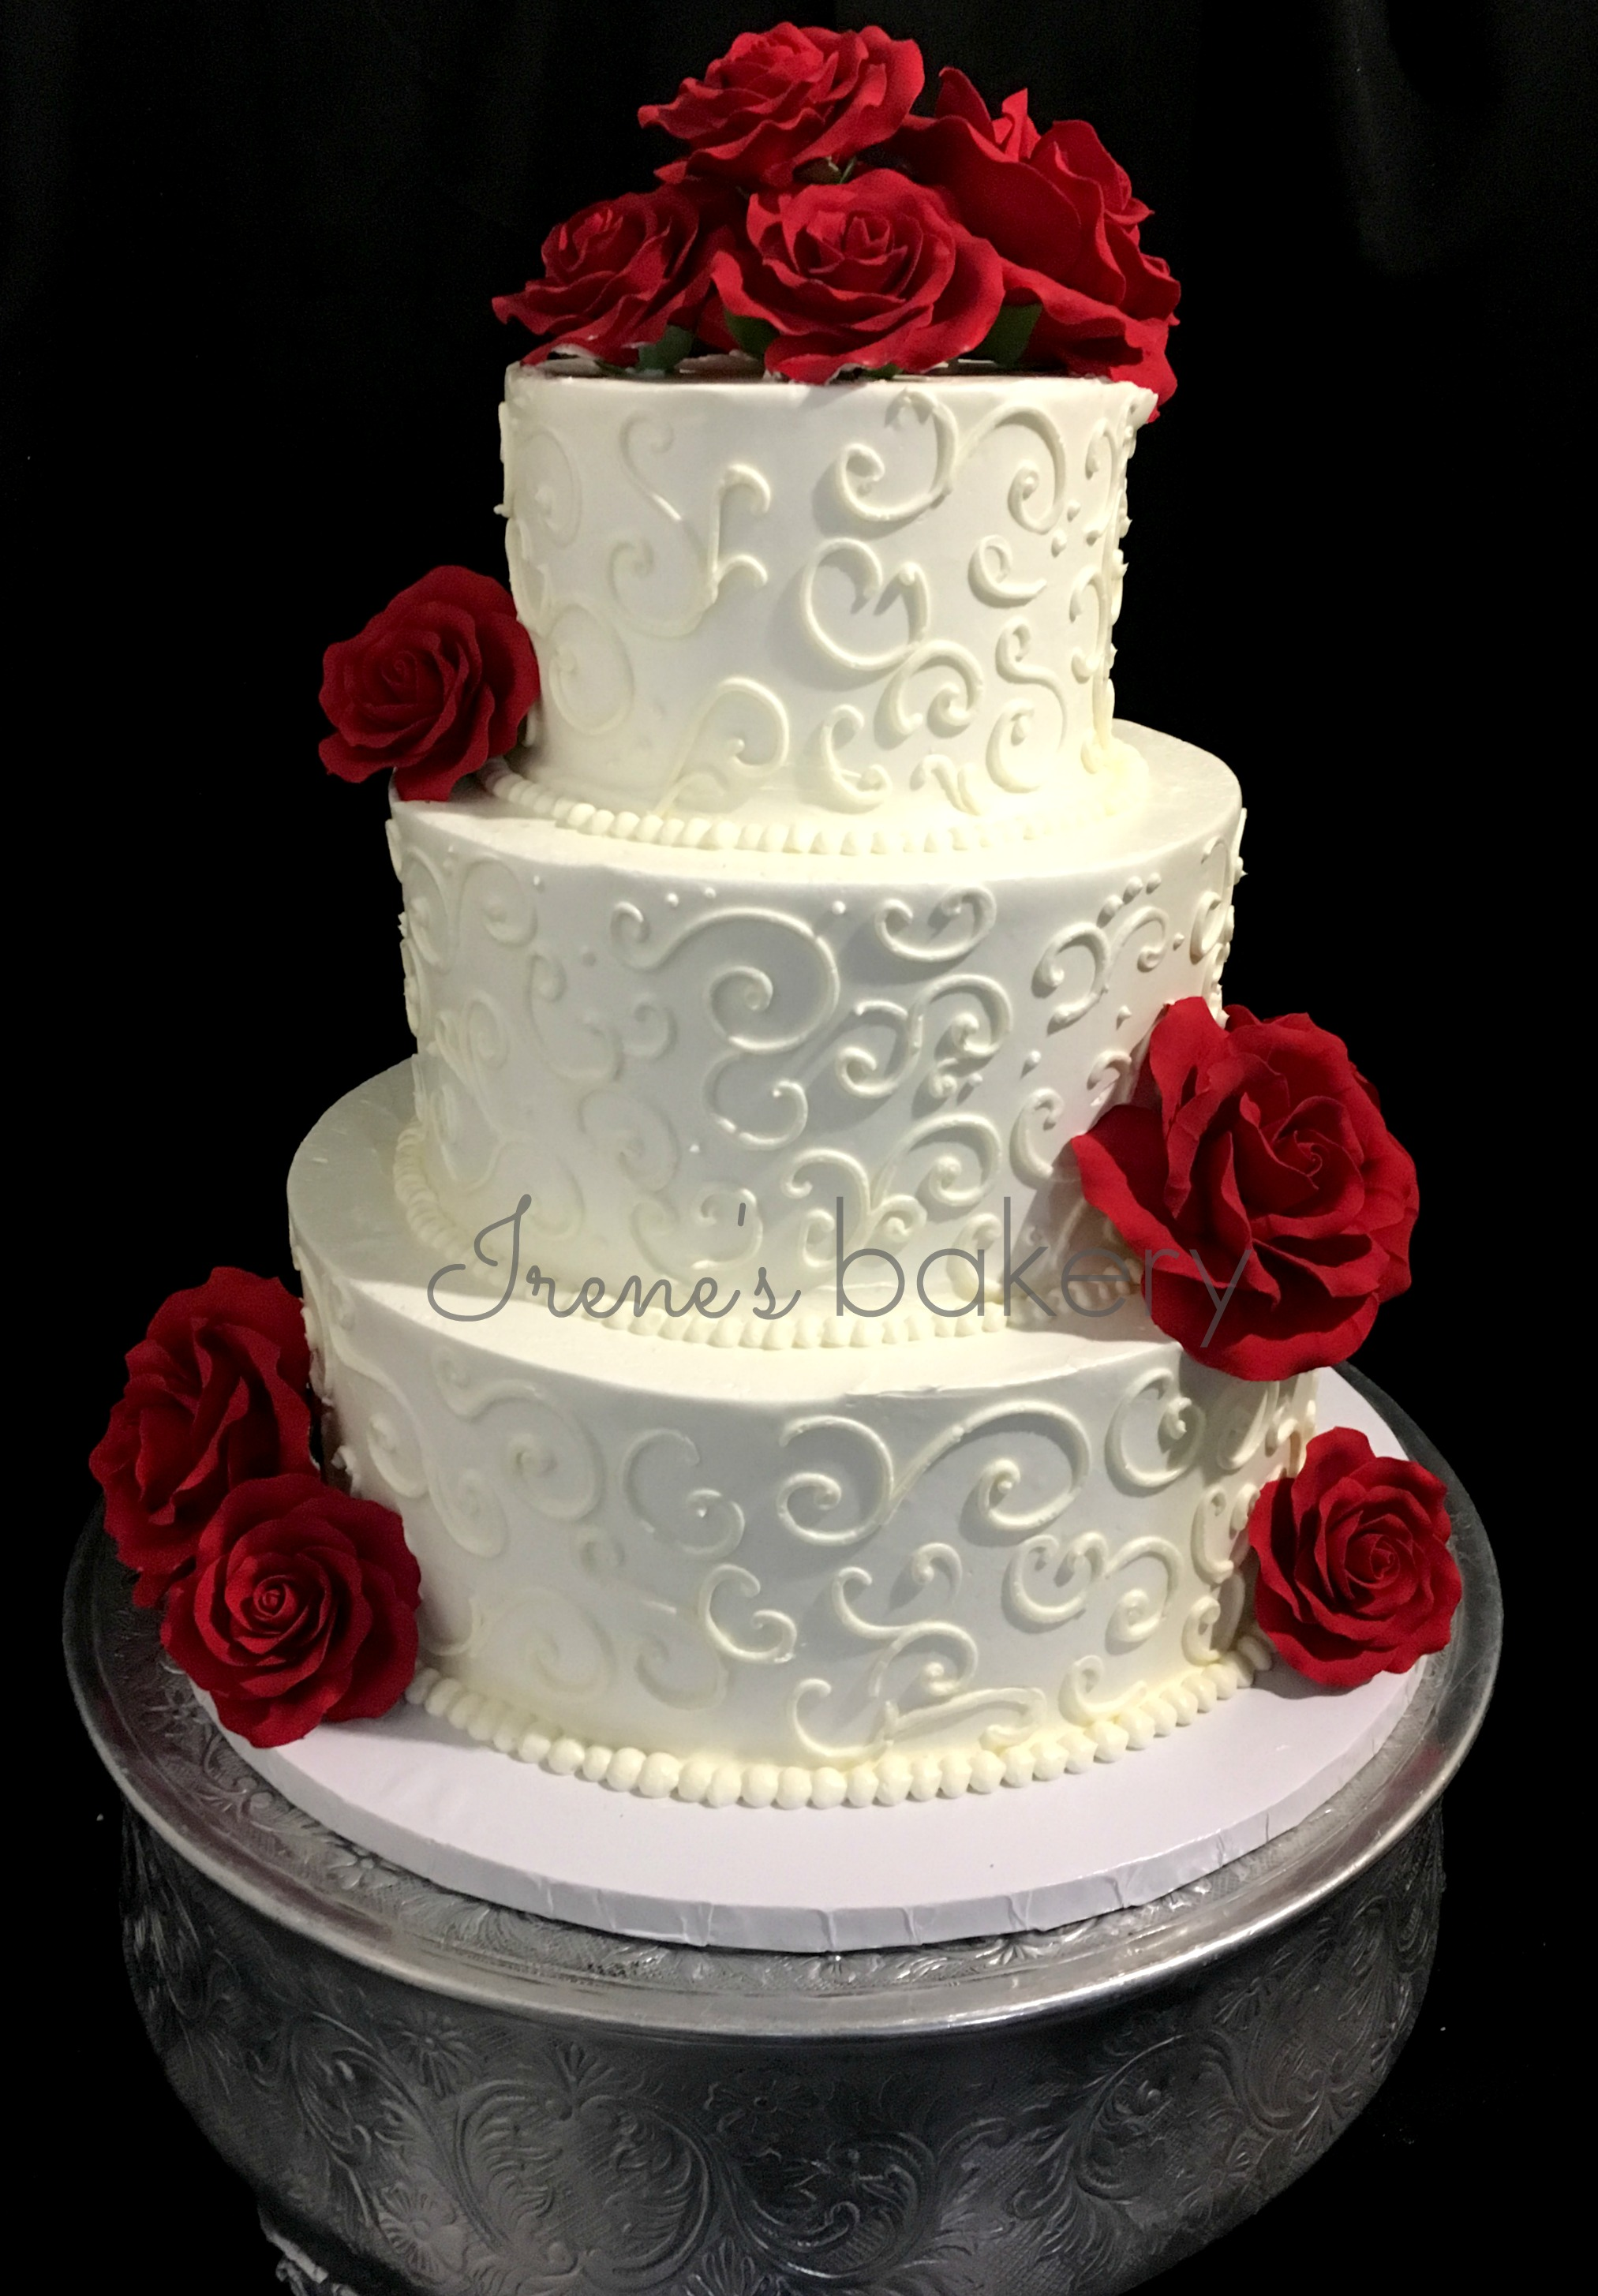 Home Sweet Home Wedding Cakes - Irenes Bakery